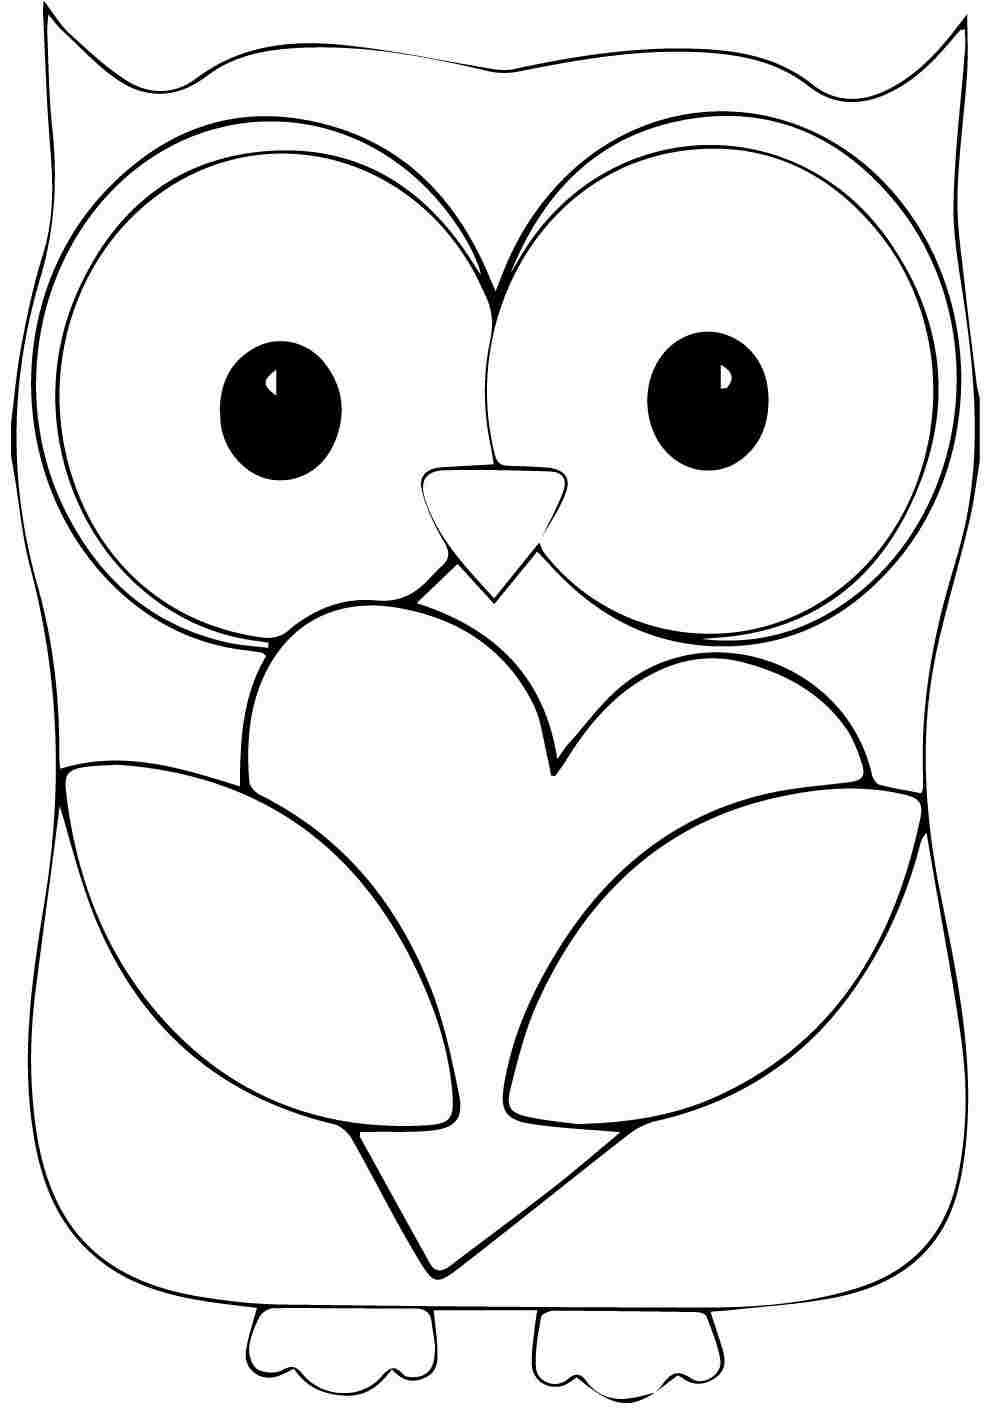 Printable Animal Owl Coloring Sheets For Kindergarten 8331 Owl Coloring Pages Heart Coloring Pages Animal Coloring Pages